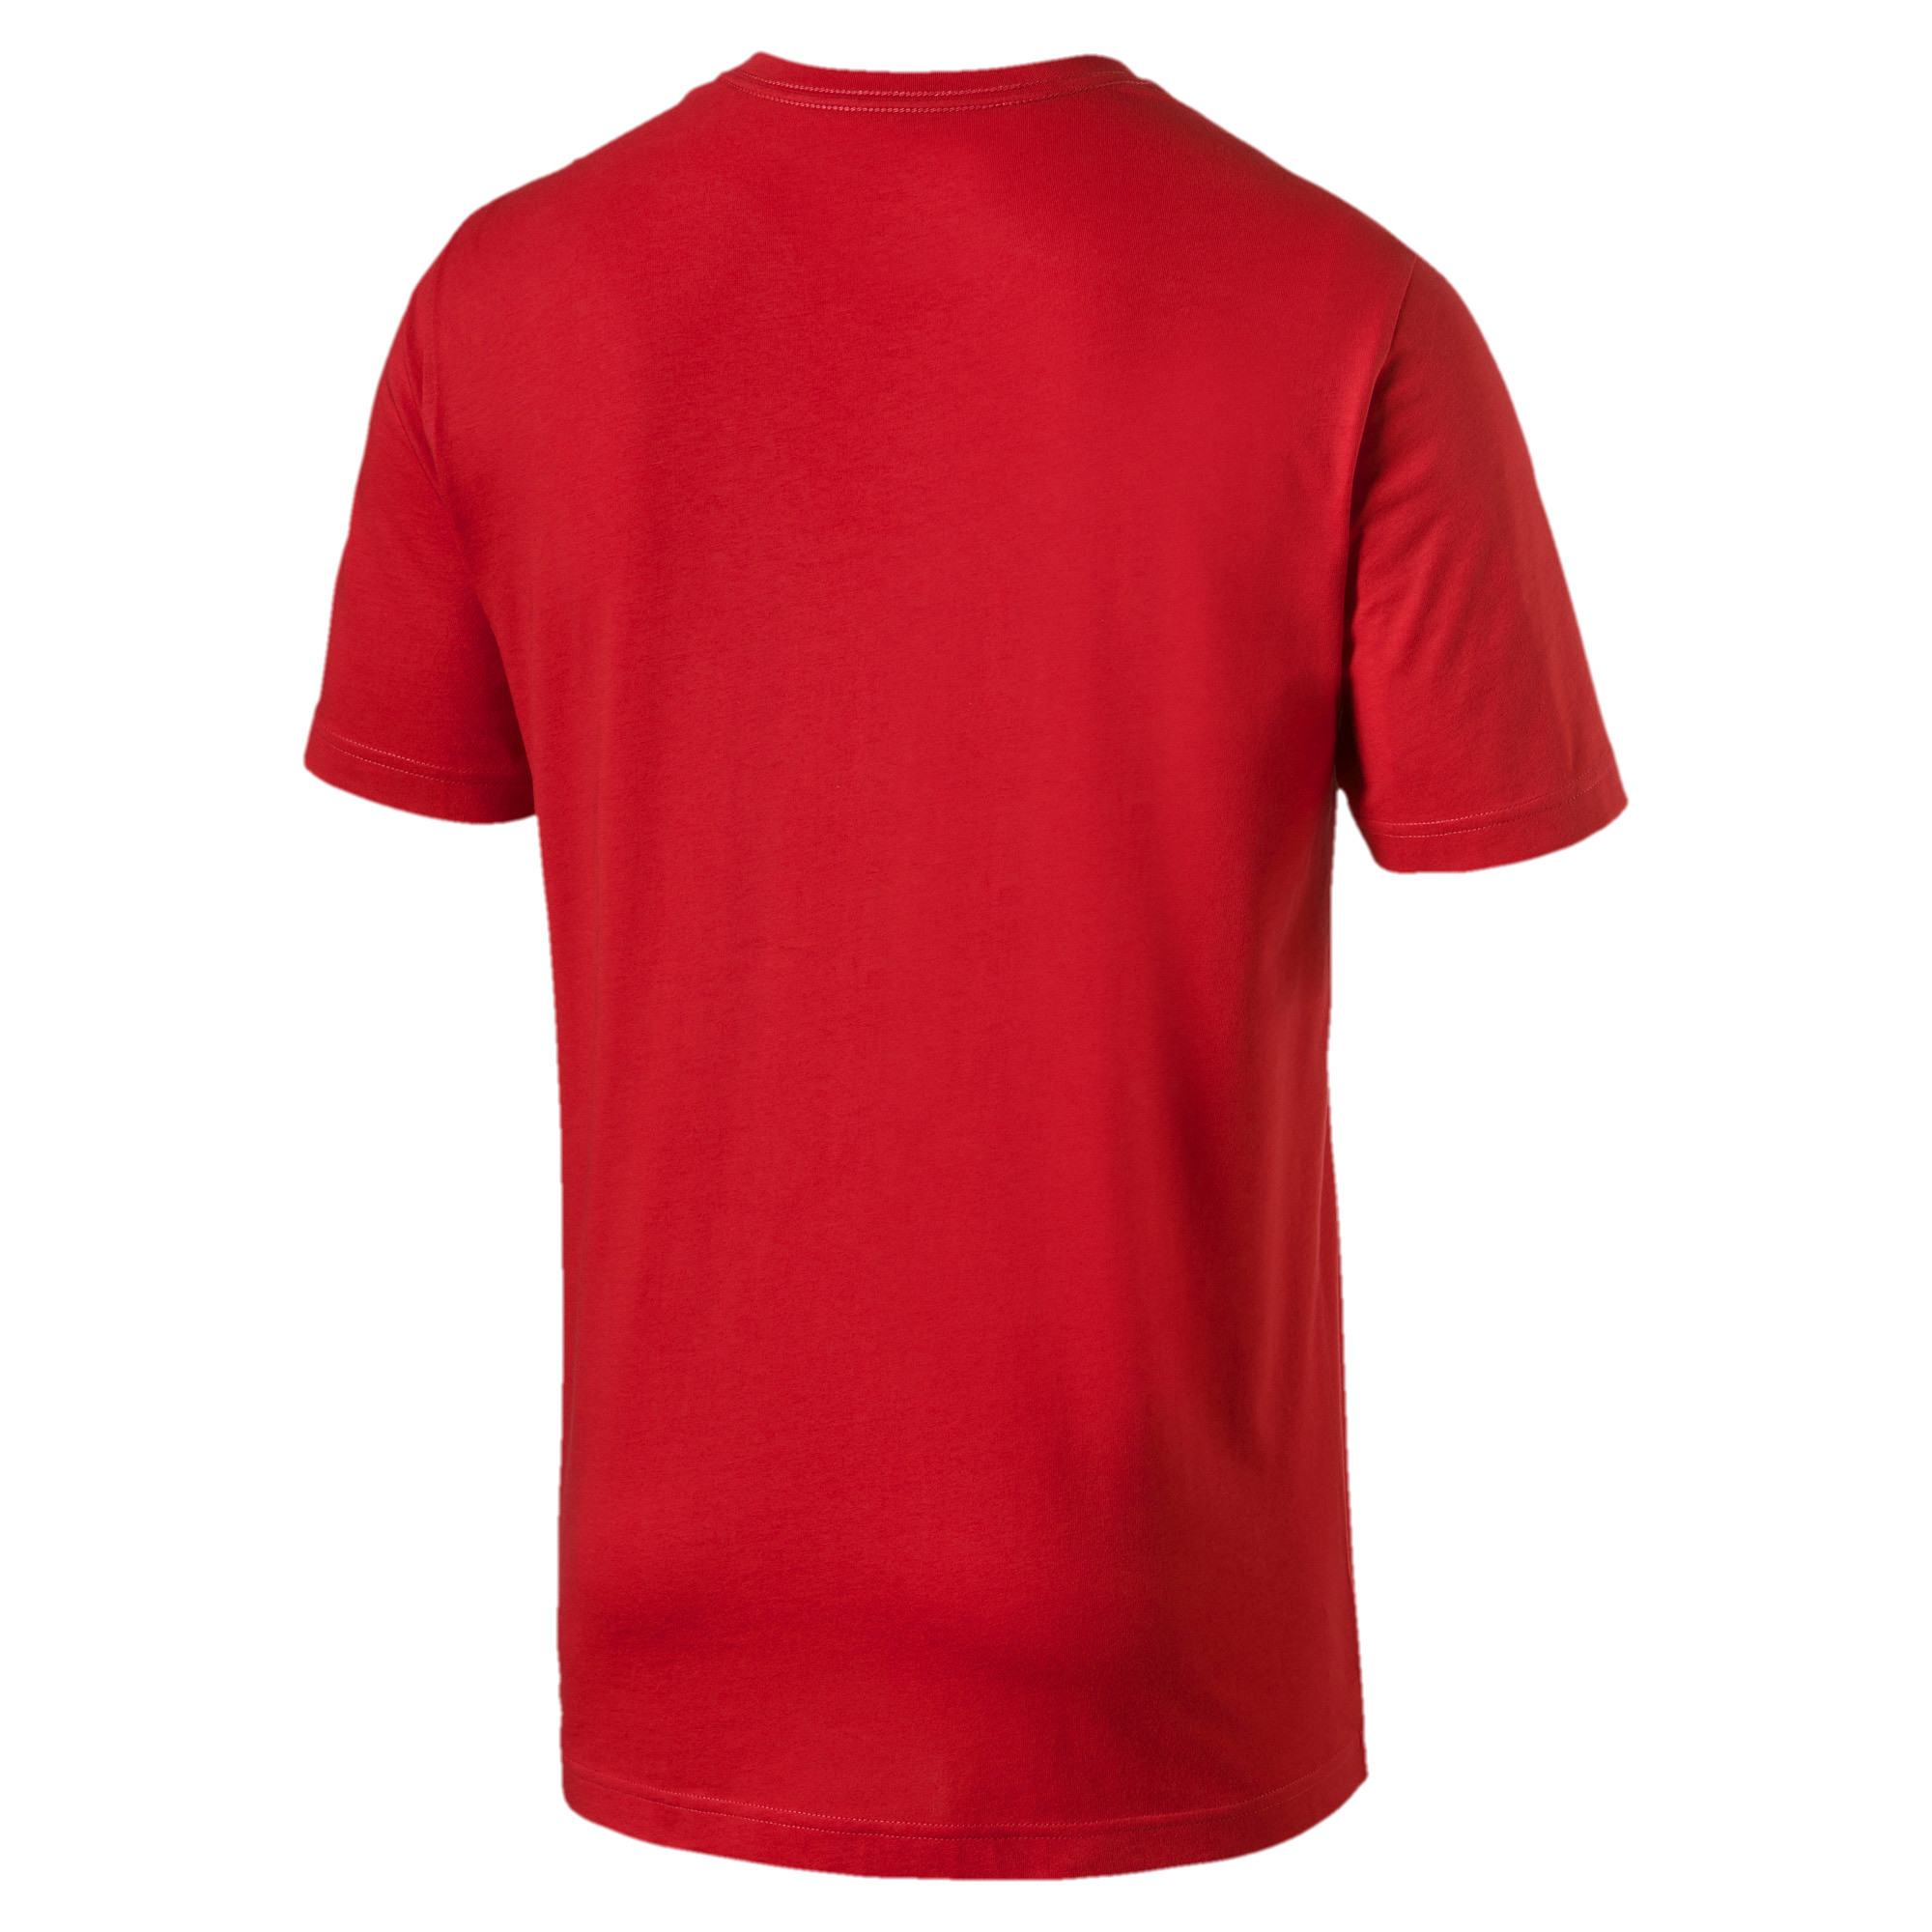 PUMA-Essentials-Men-039-s-V-Neck-Tee-Men-Tee-Basics thumbnail 18